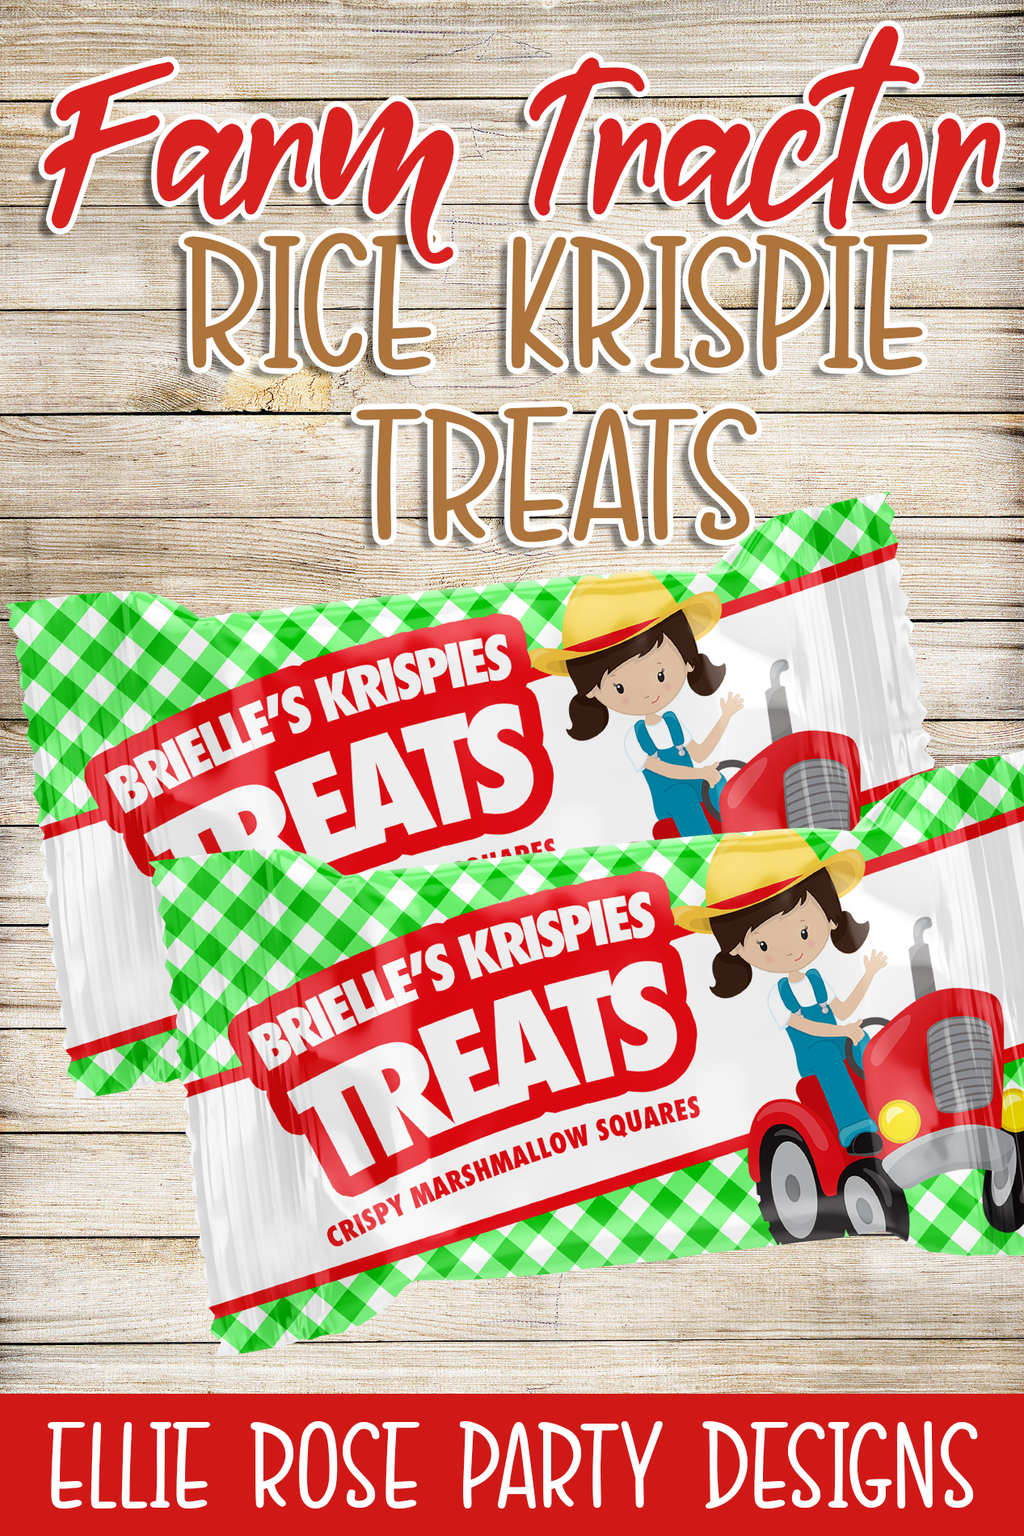 farm barnyard rice krispie treats